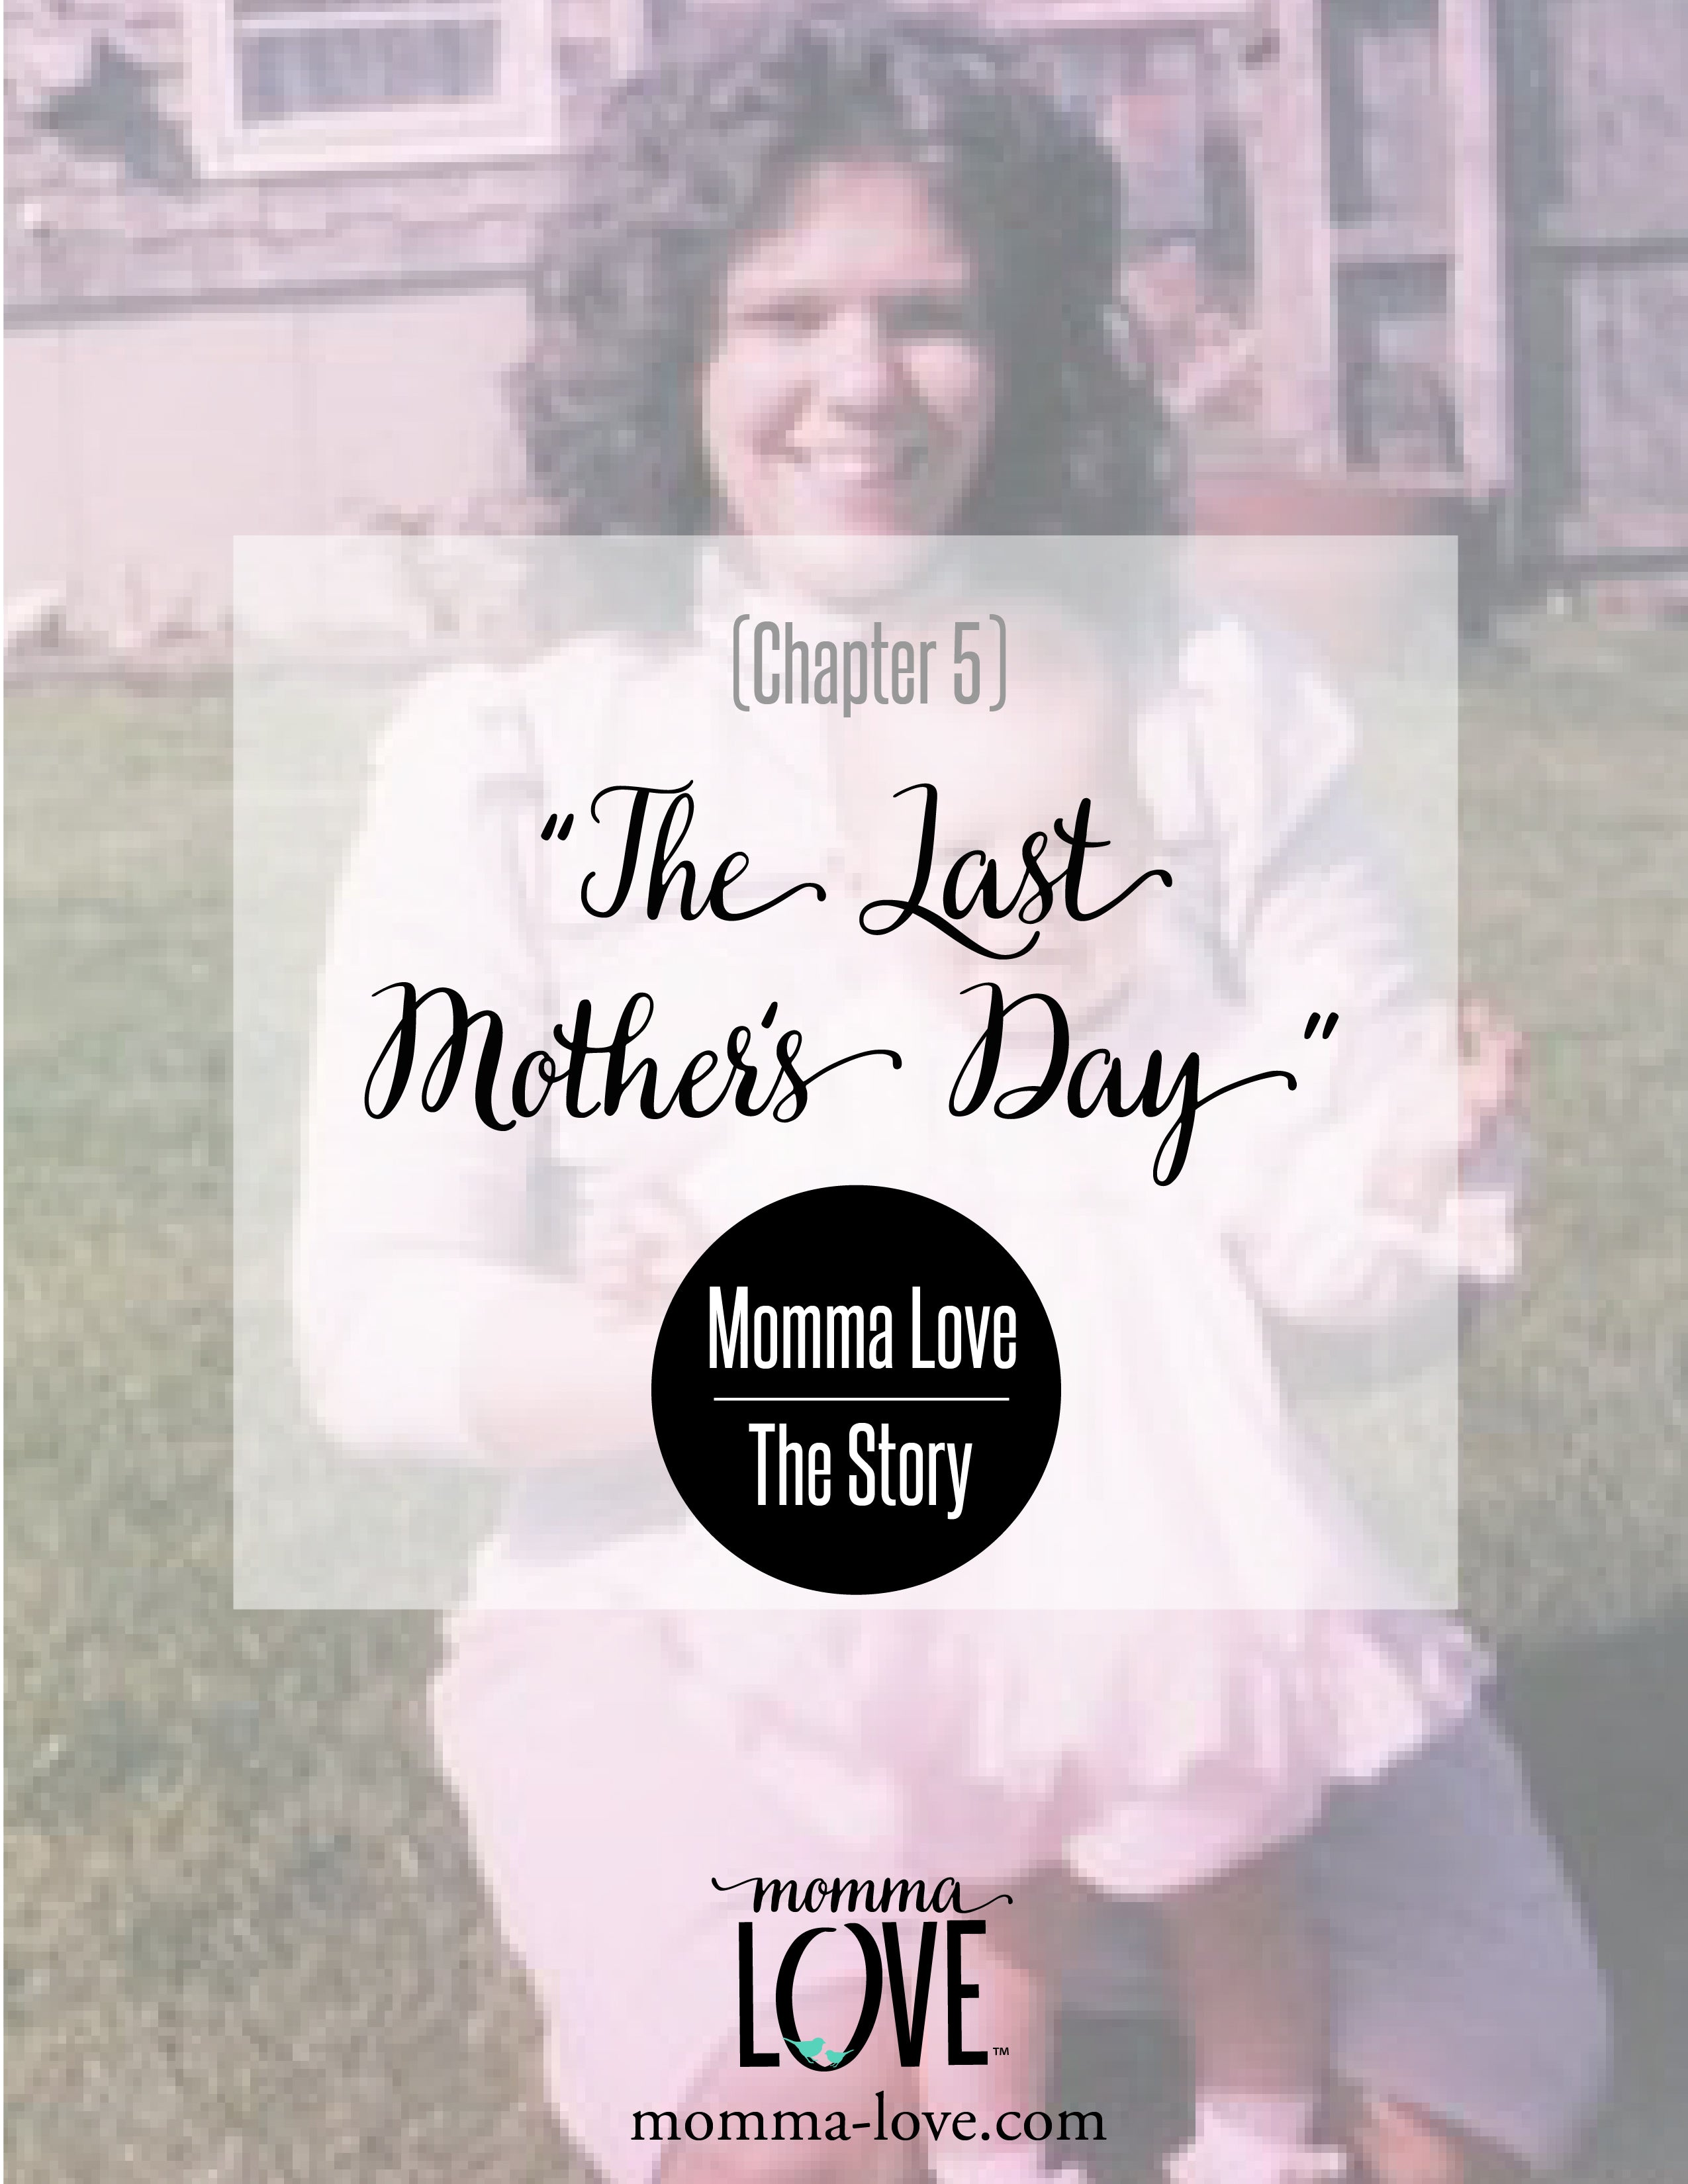 Momma Love Story Chapter 5